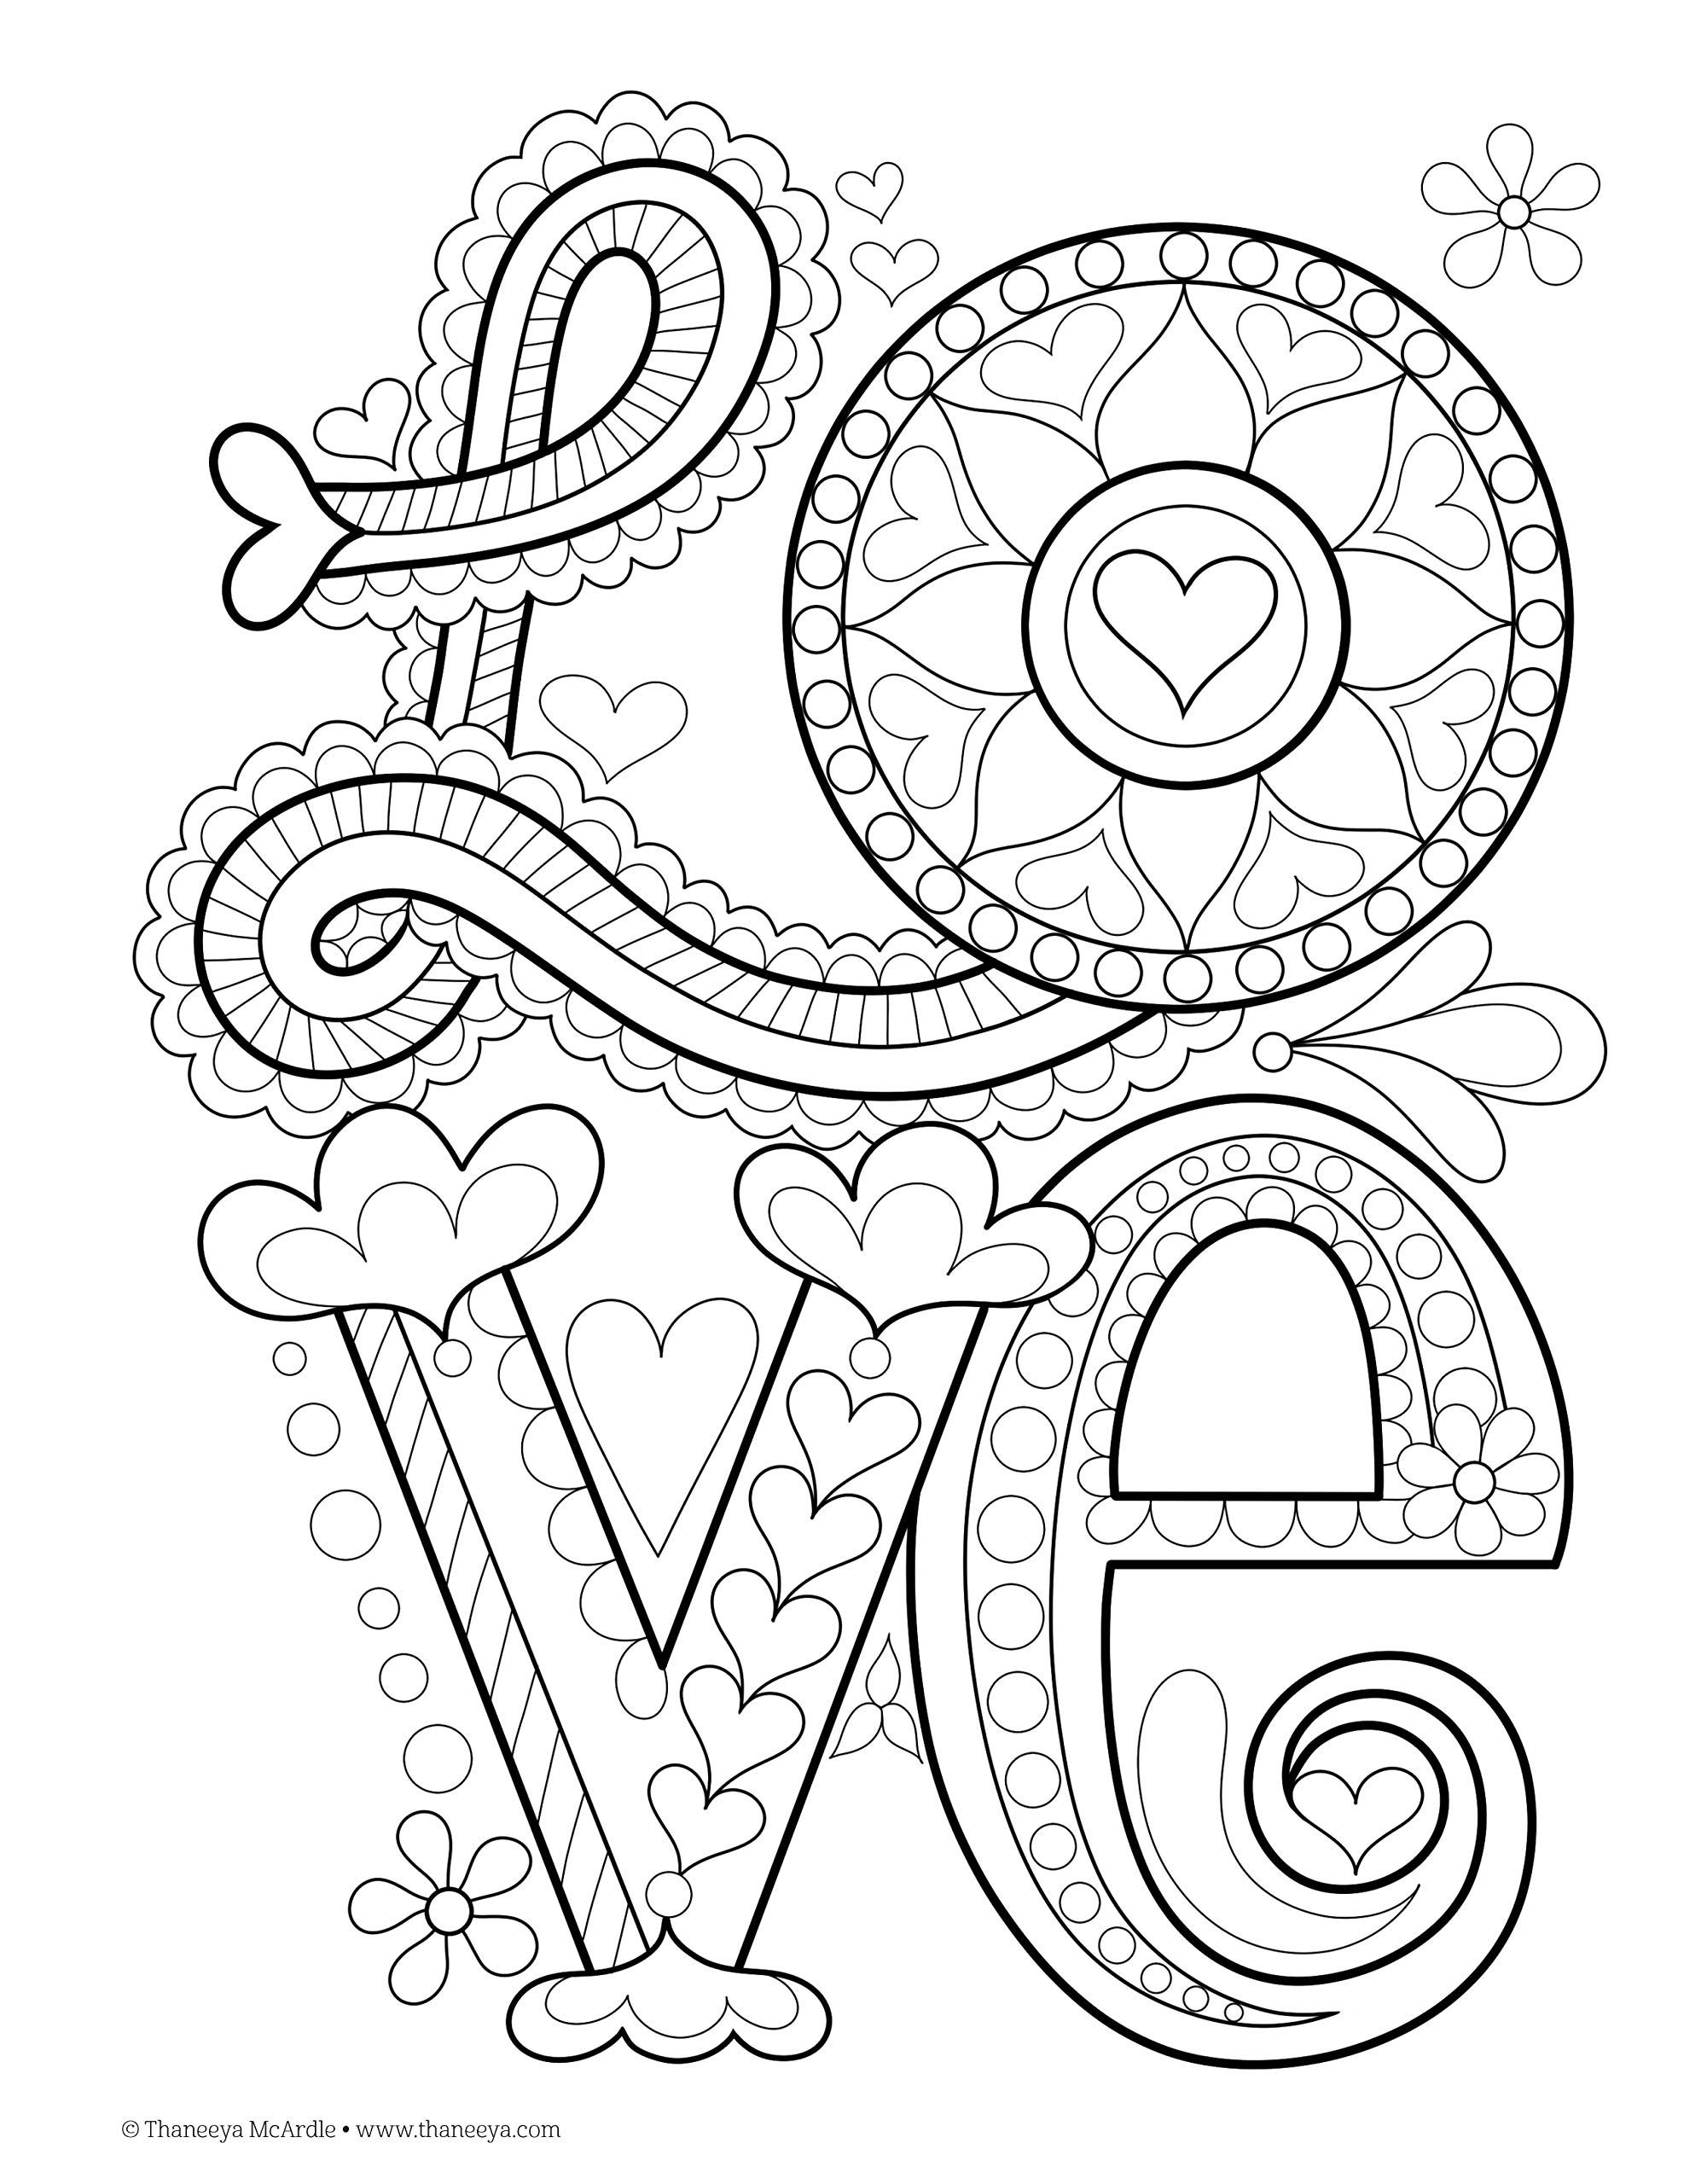 Peace Love Coloring Book Coloring Is Fun Design Originals 30 Far Out 60s Inspired Beginner Fr Love Coloring Pages Mandala Coloring Pages Coloring Books